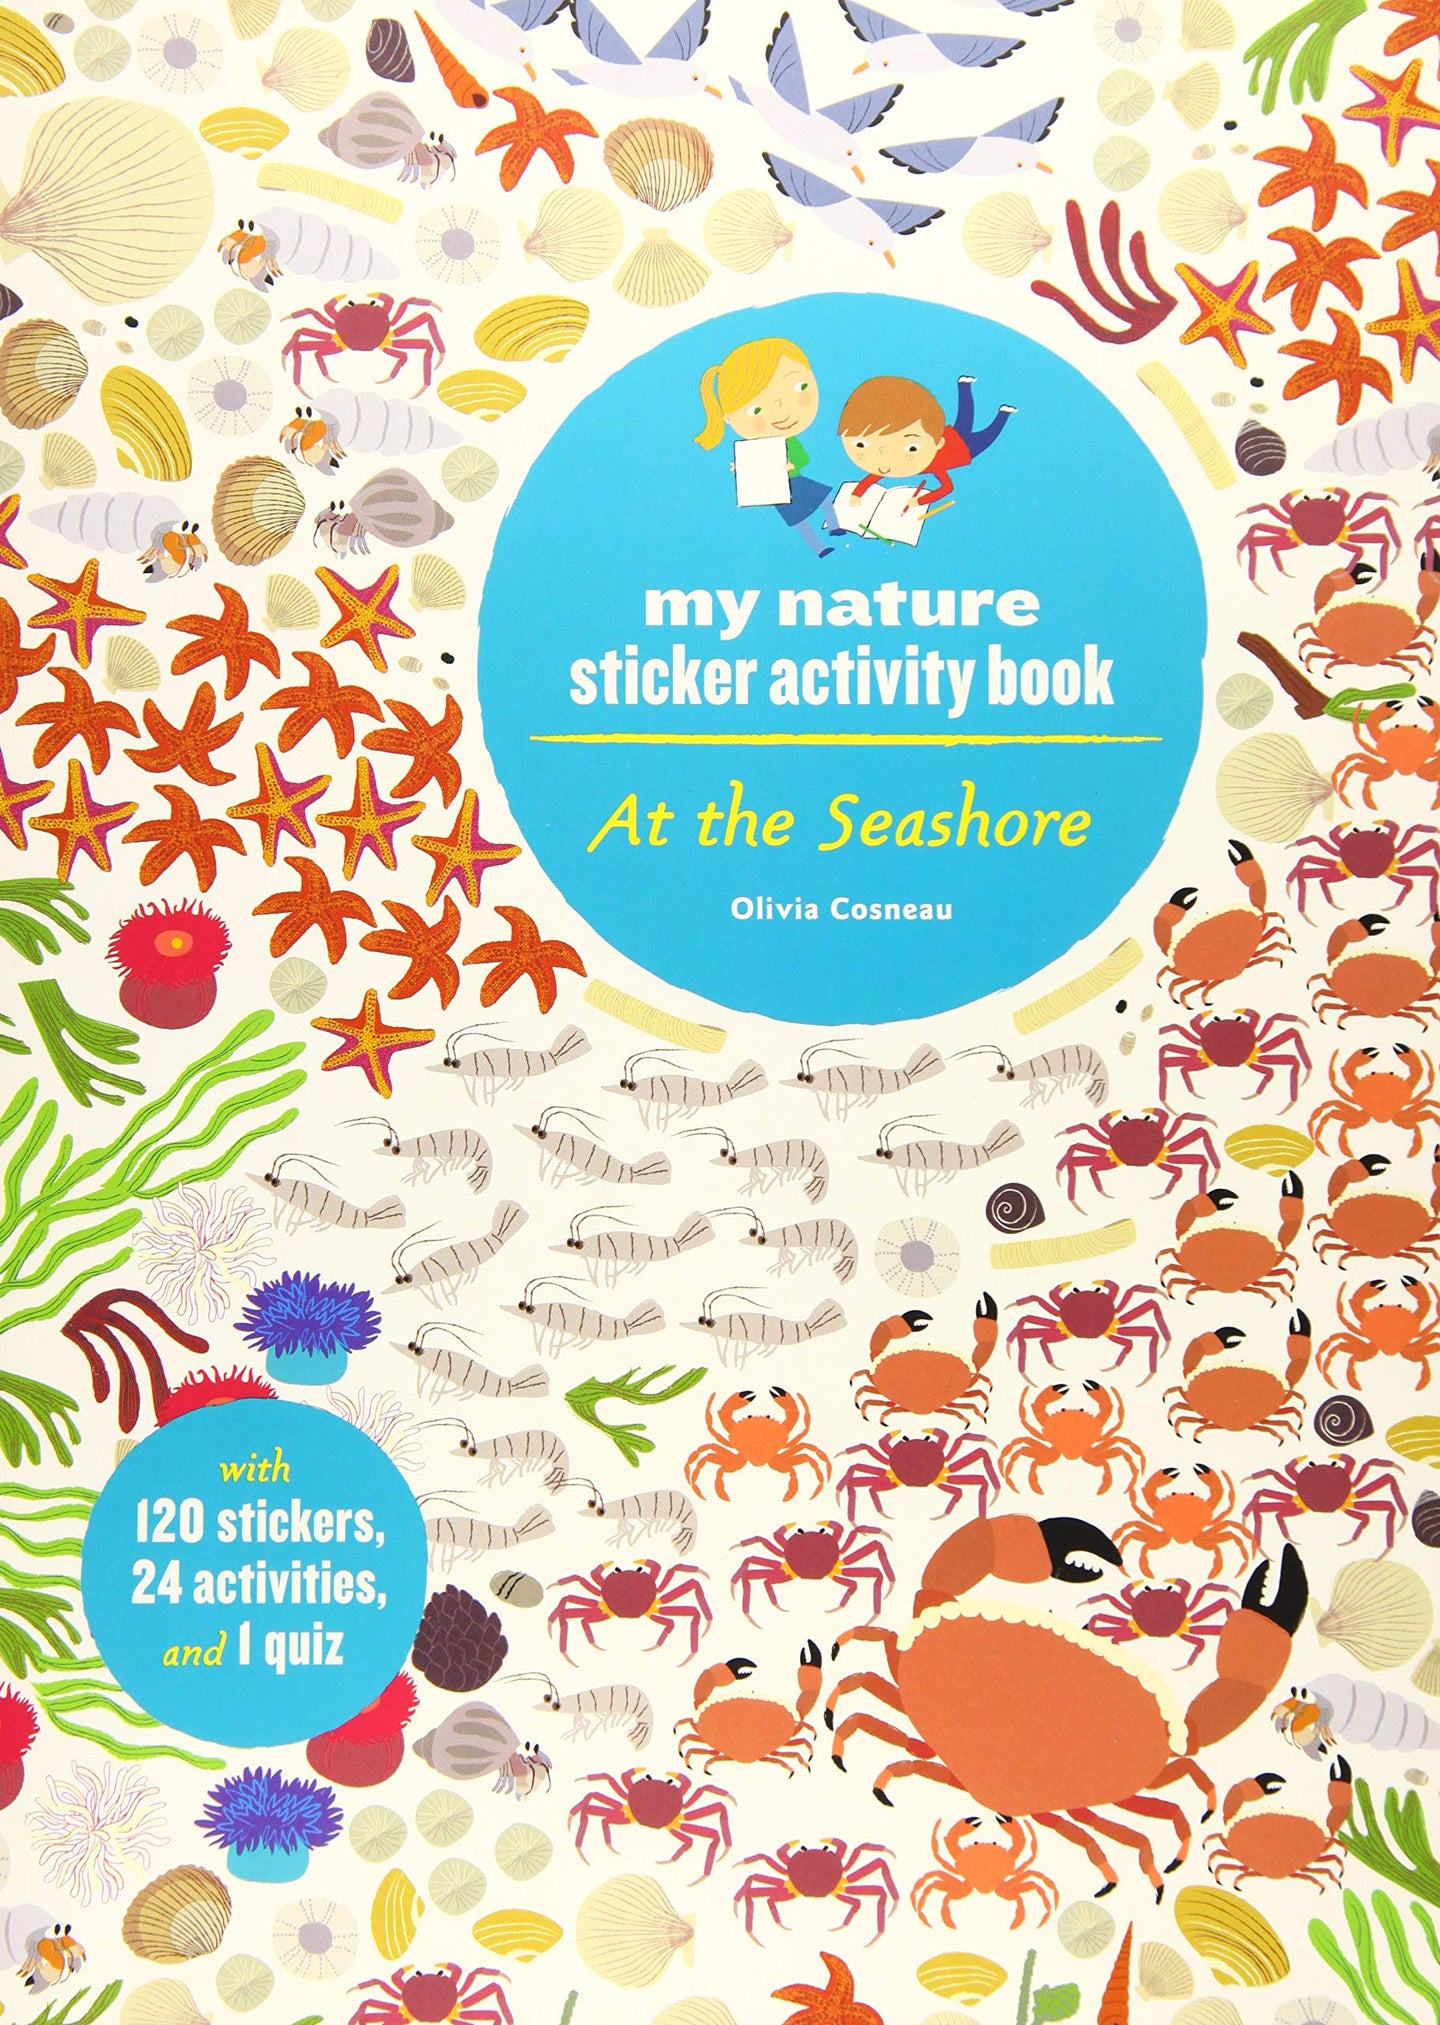 My Nature Sticker Activity Book - At the Seashore (Paperback)